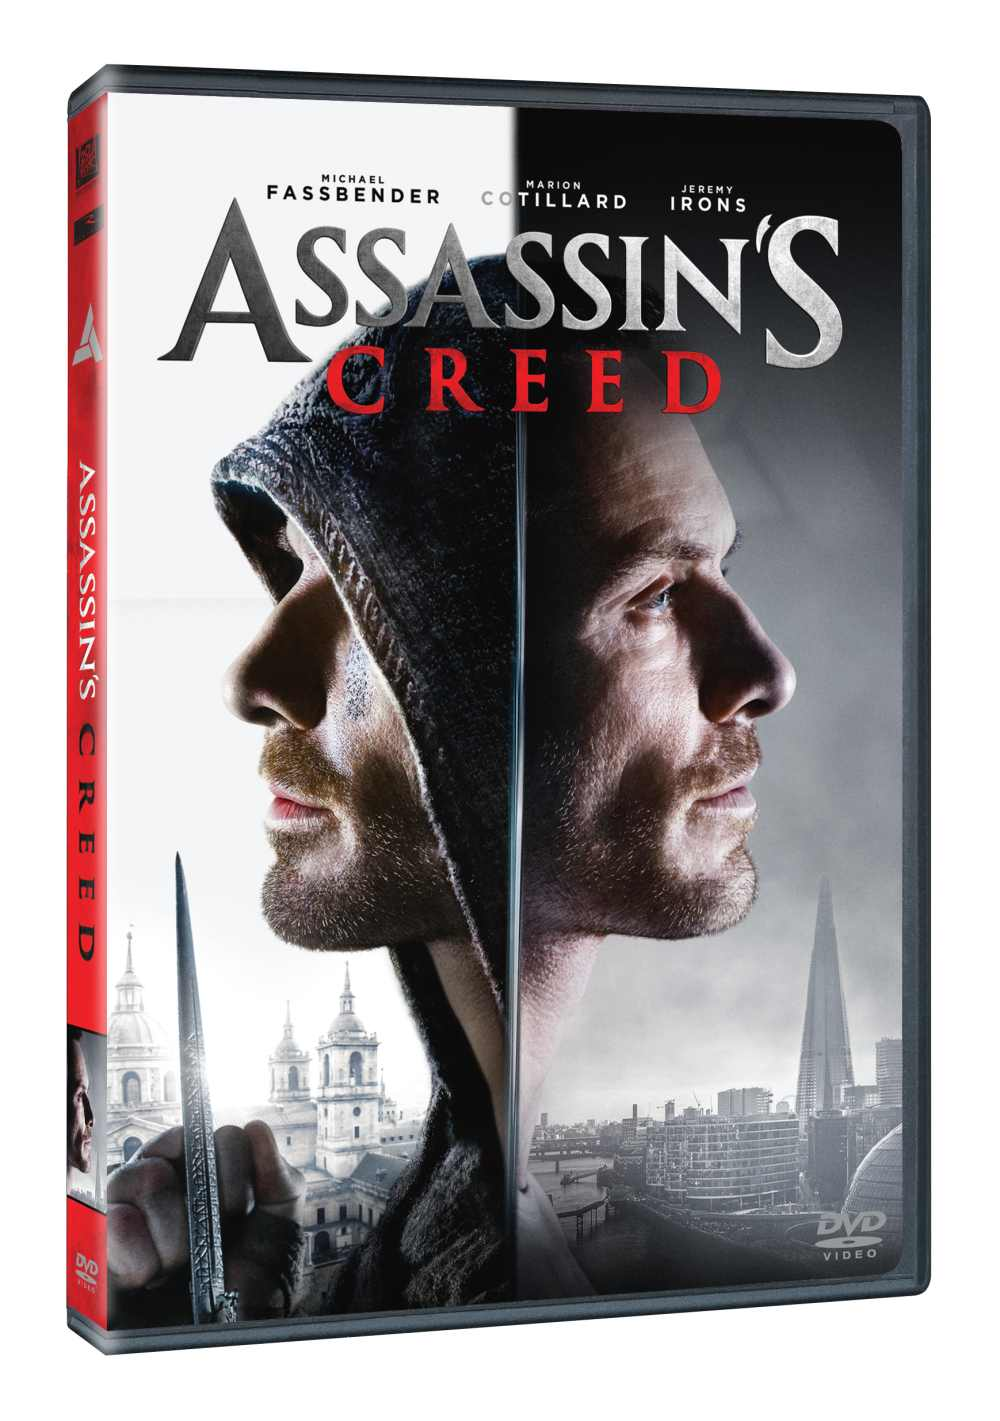 ASSASSINS CREED - DVD